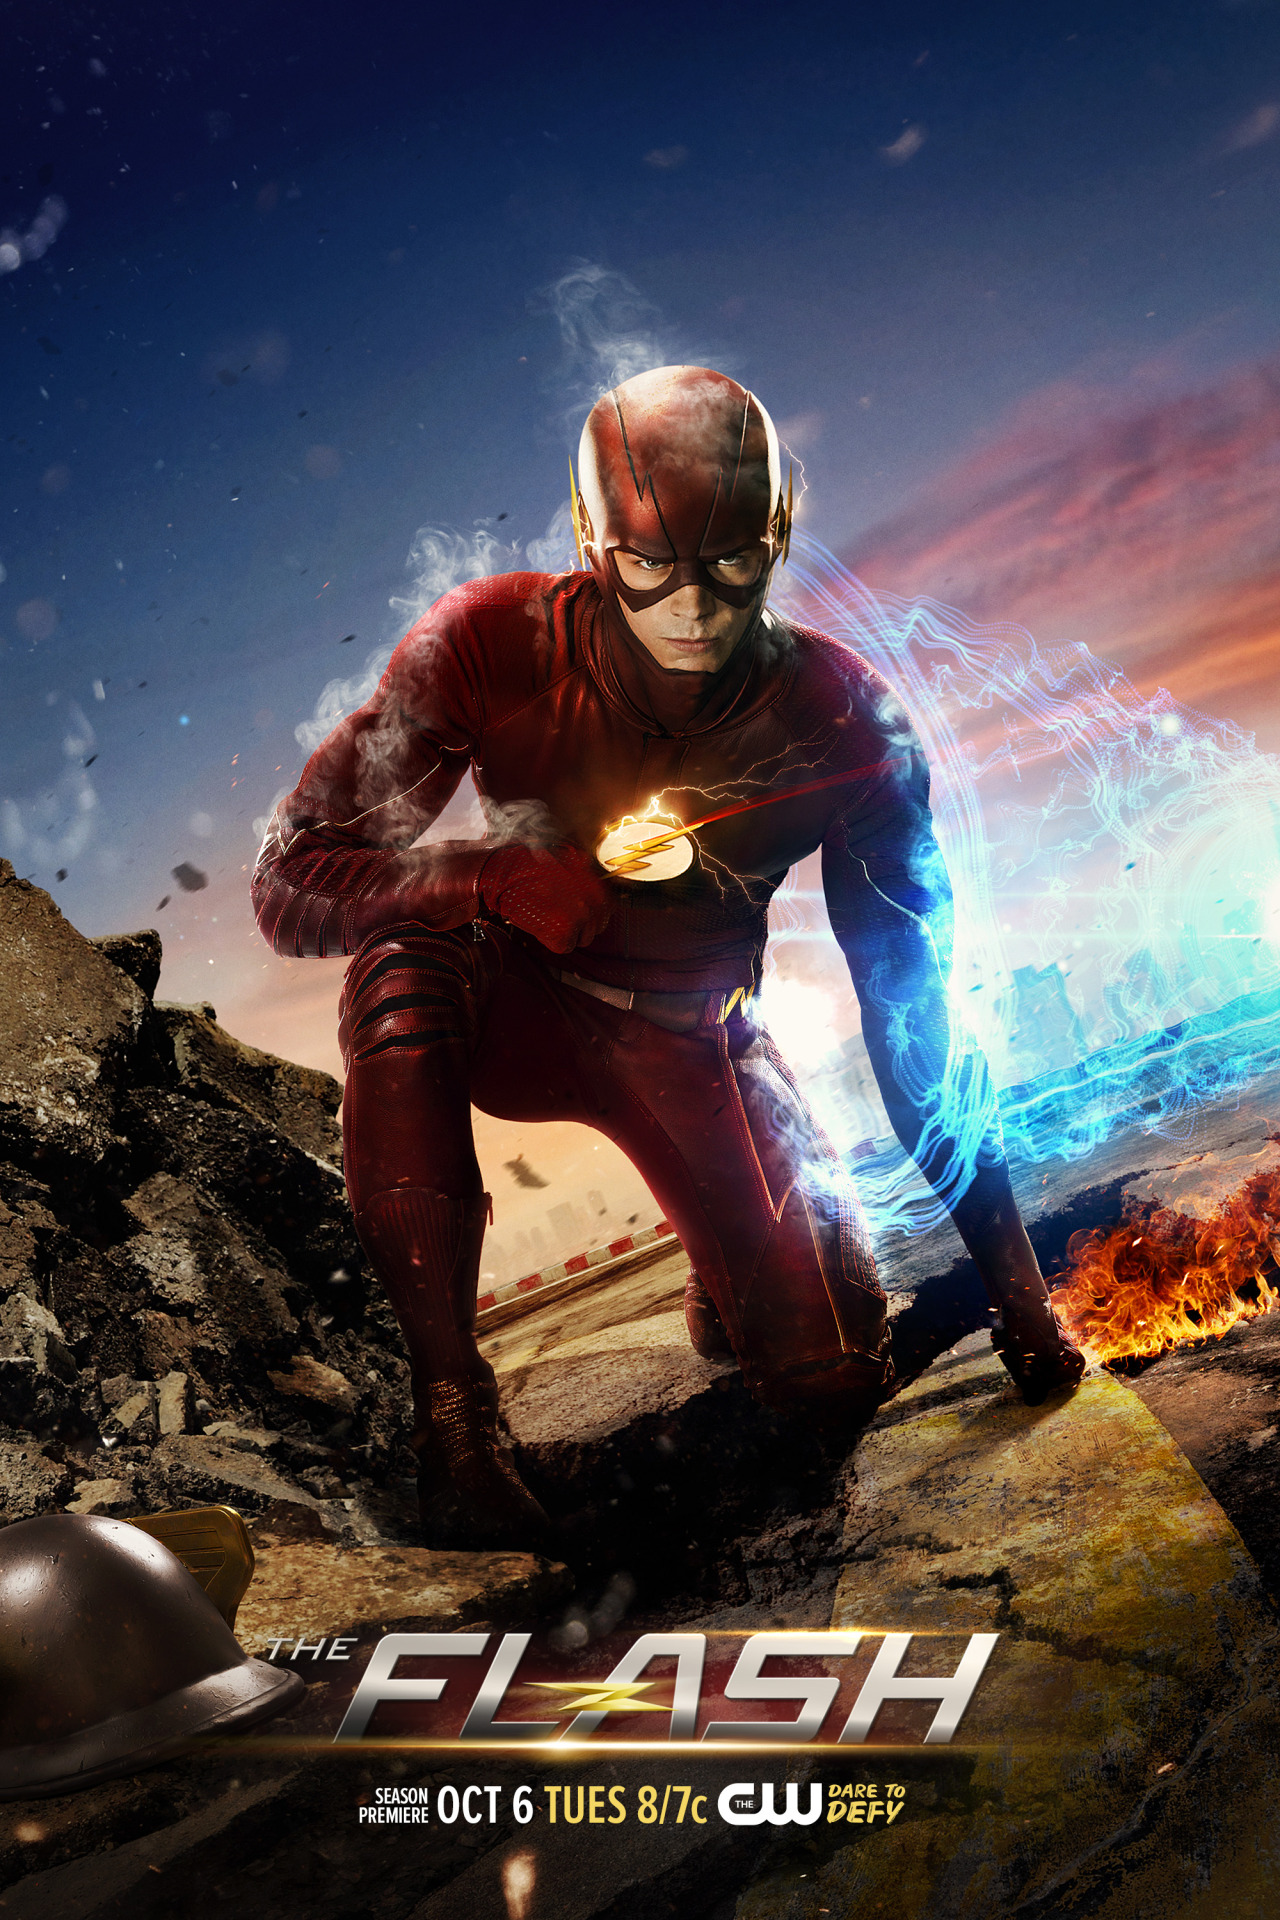 The_Flash_season_2_poster_-_Premieres_tonight.png